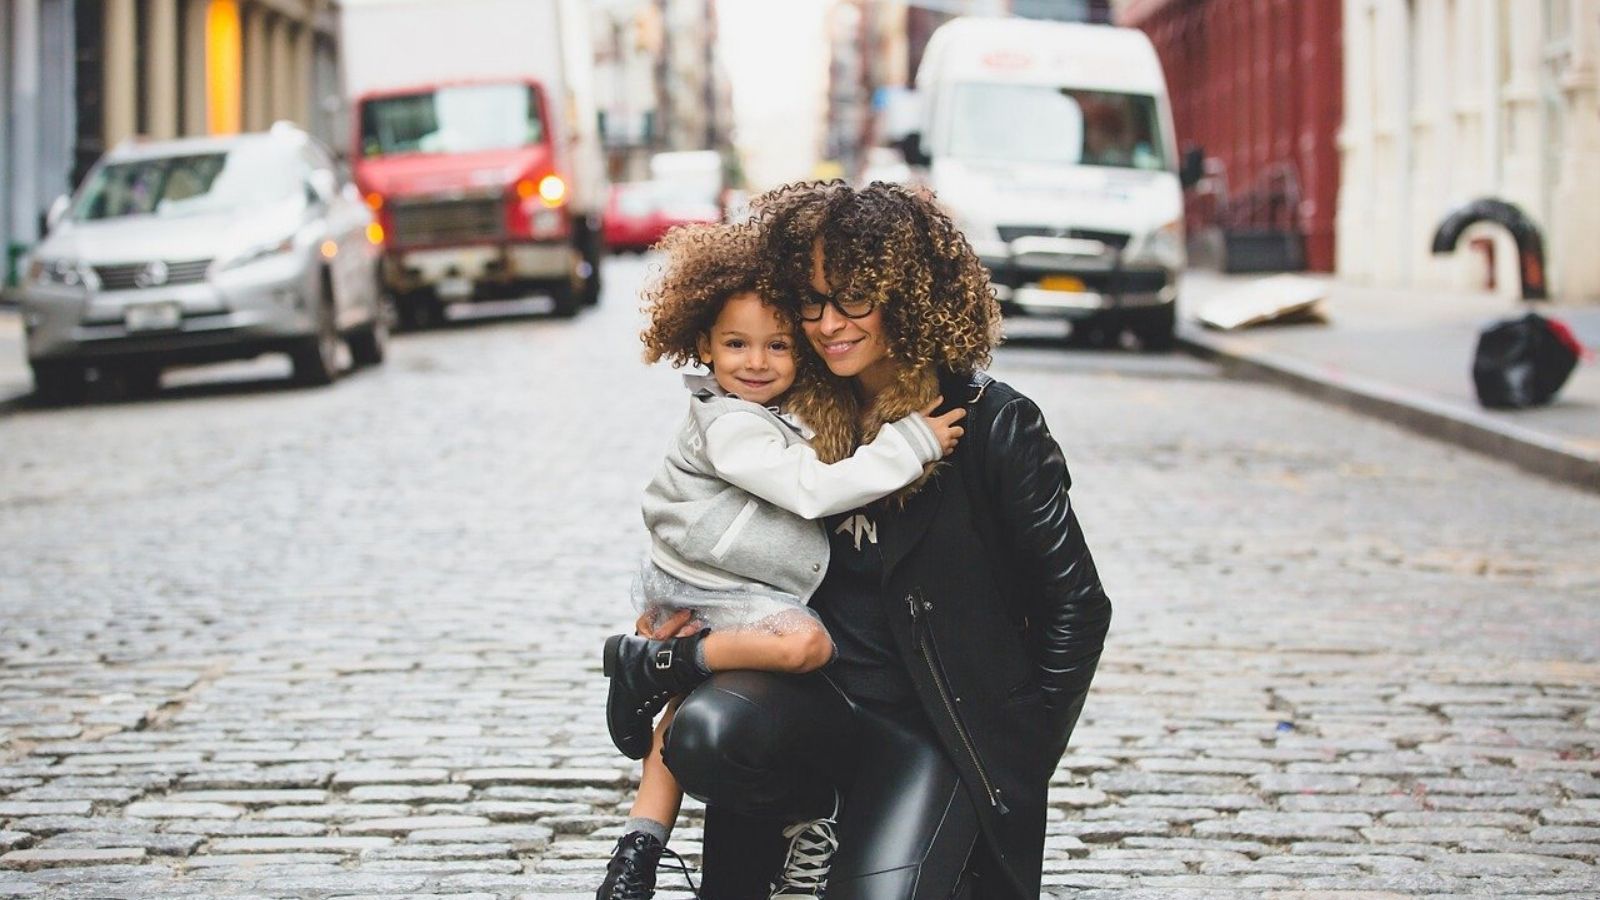 An urban woman holding her child on an urban, cobblestone street.